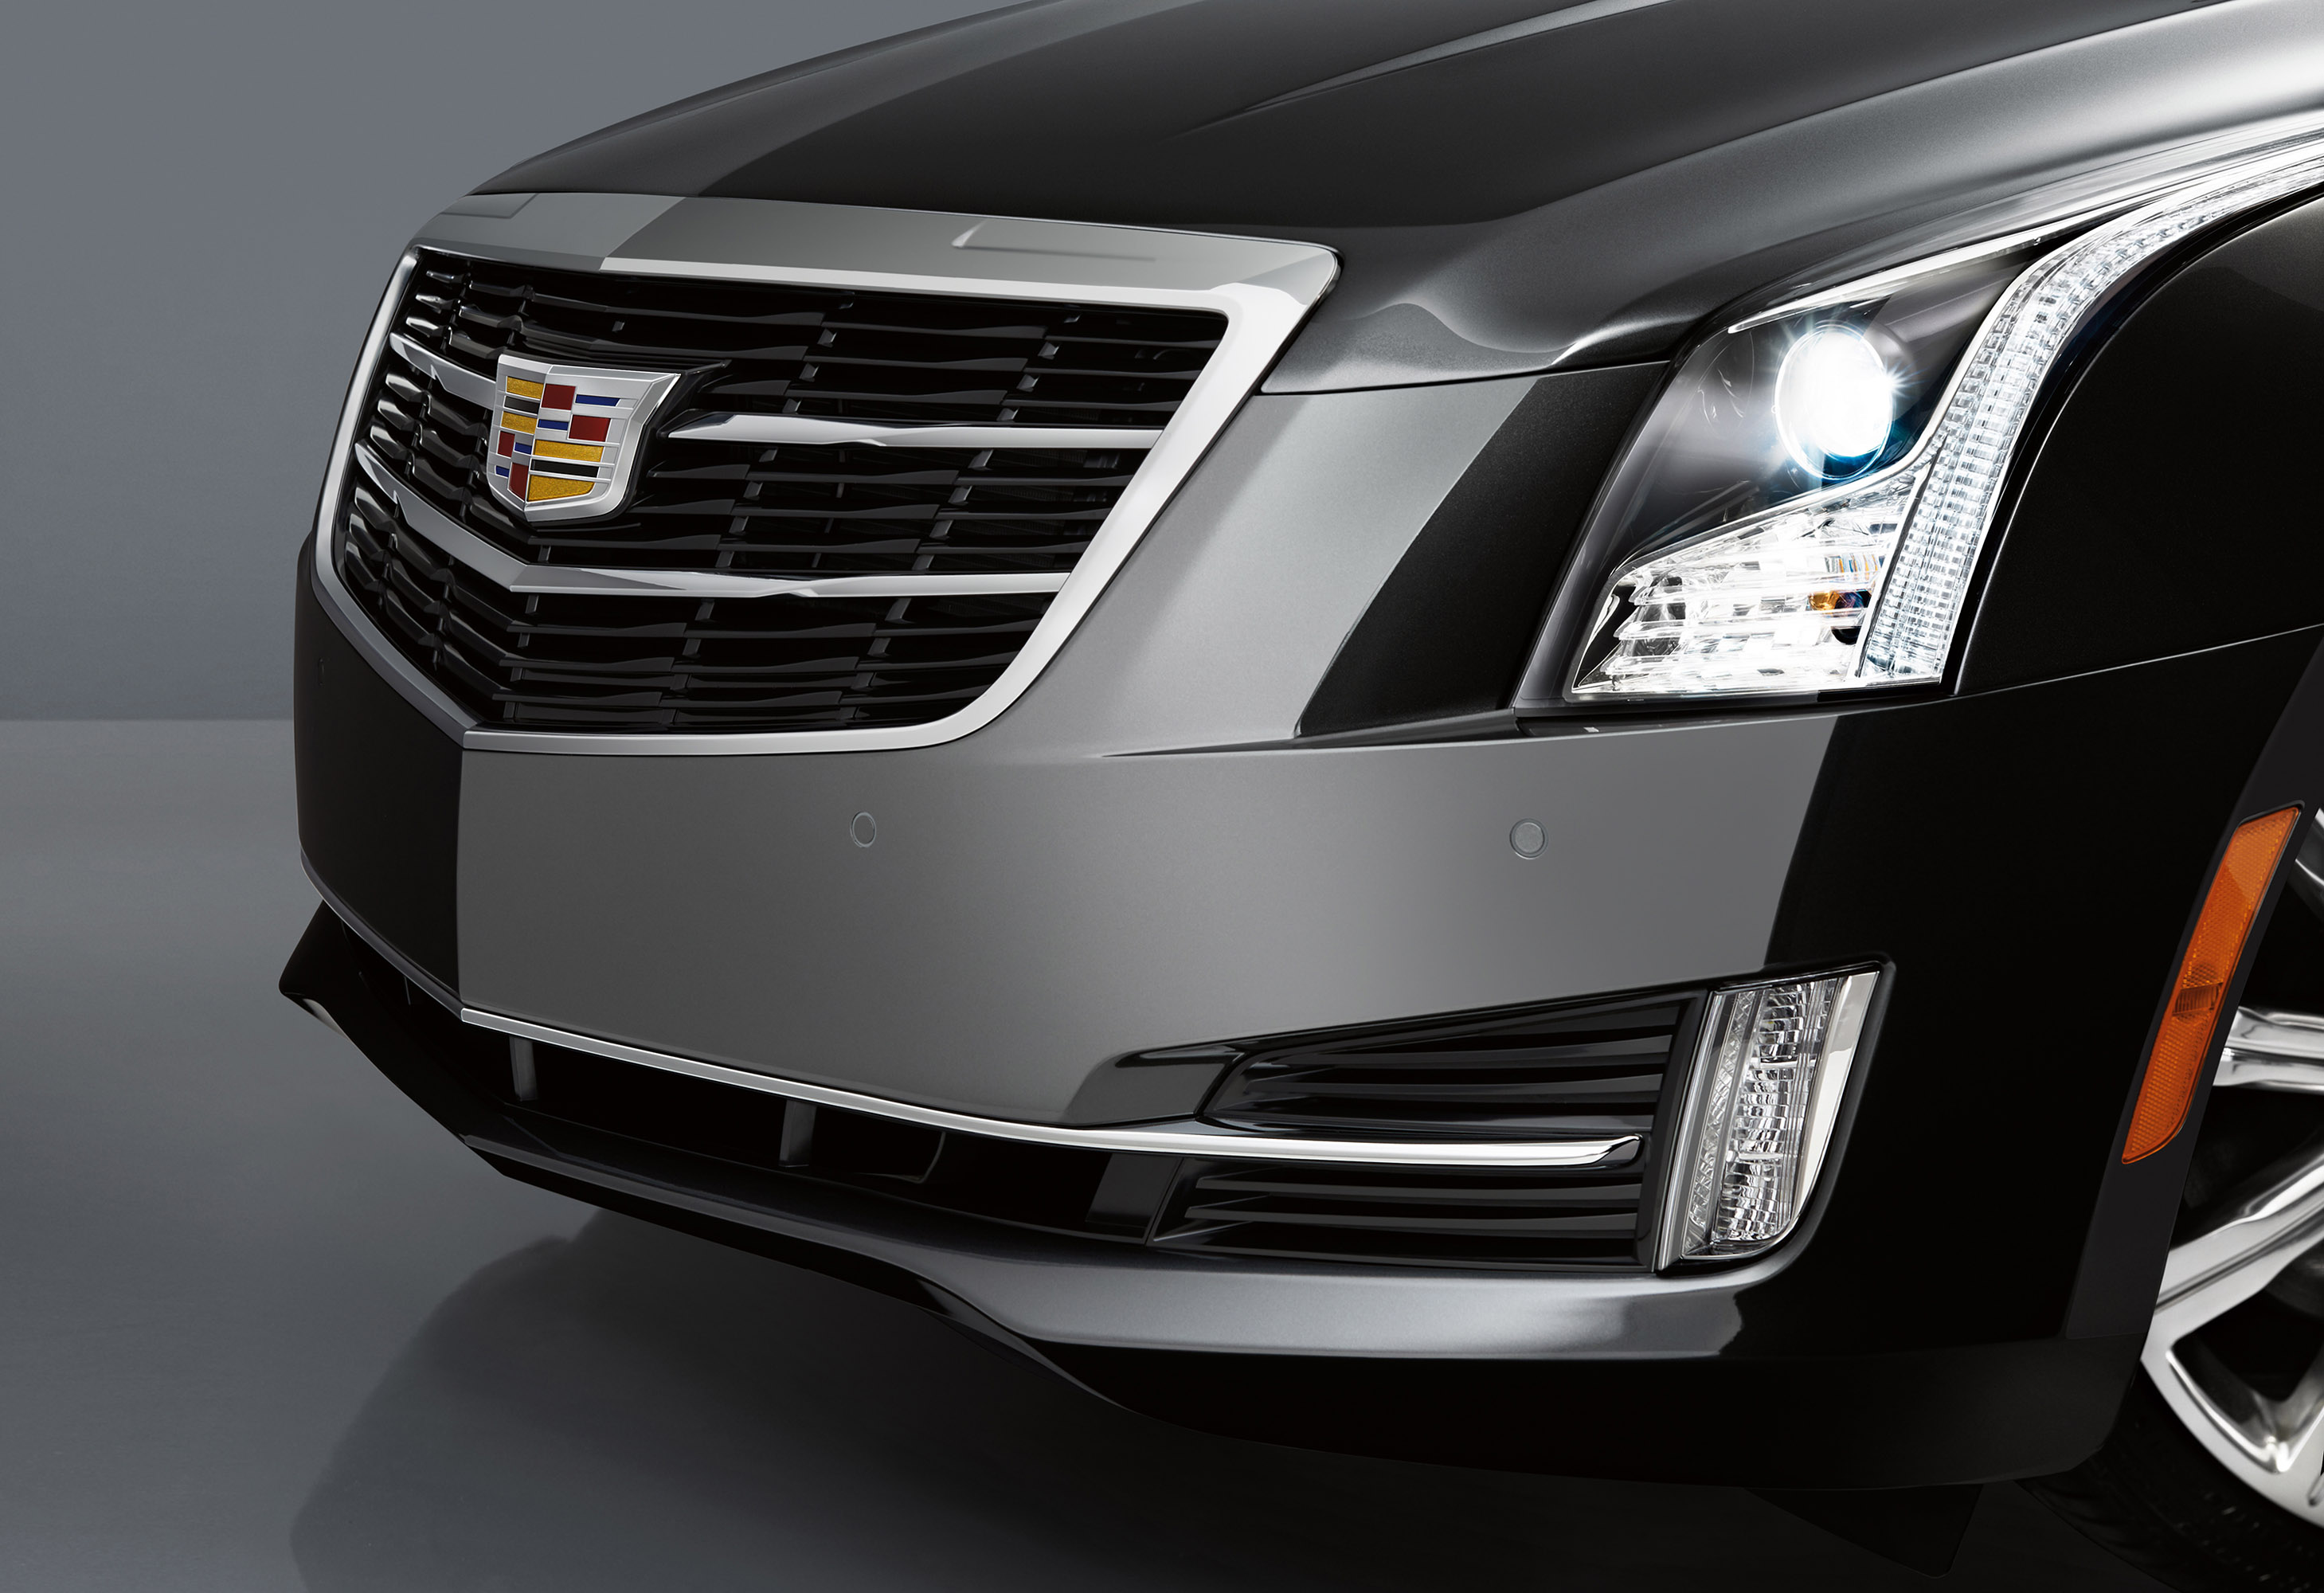 interior design cadillac asp xts awesome colors ideas msrp simple home